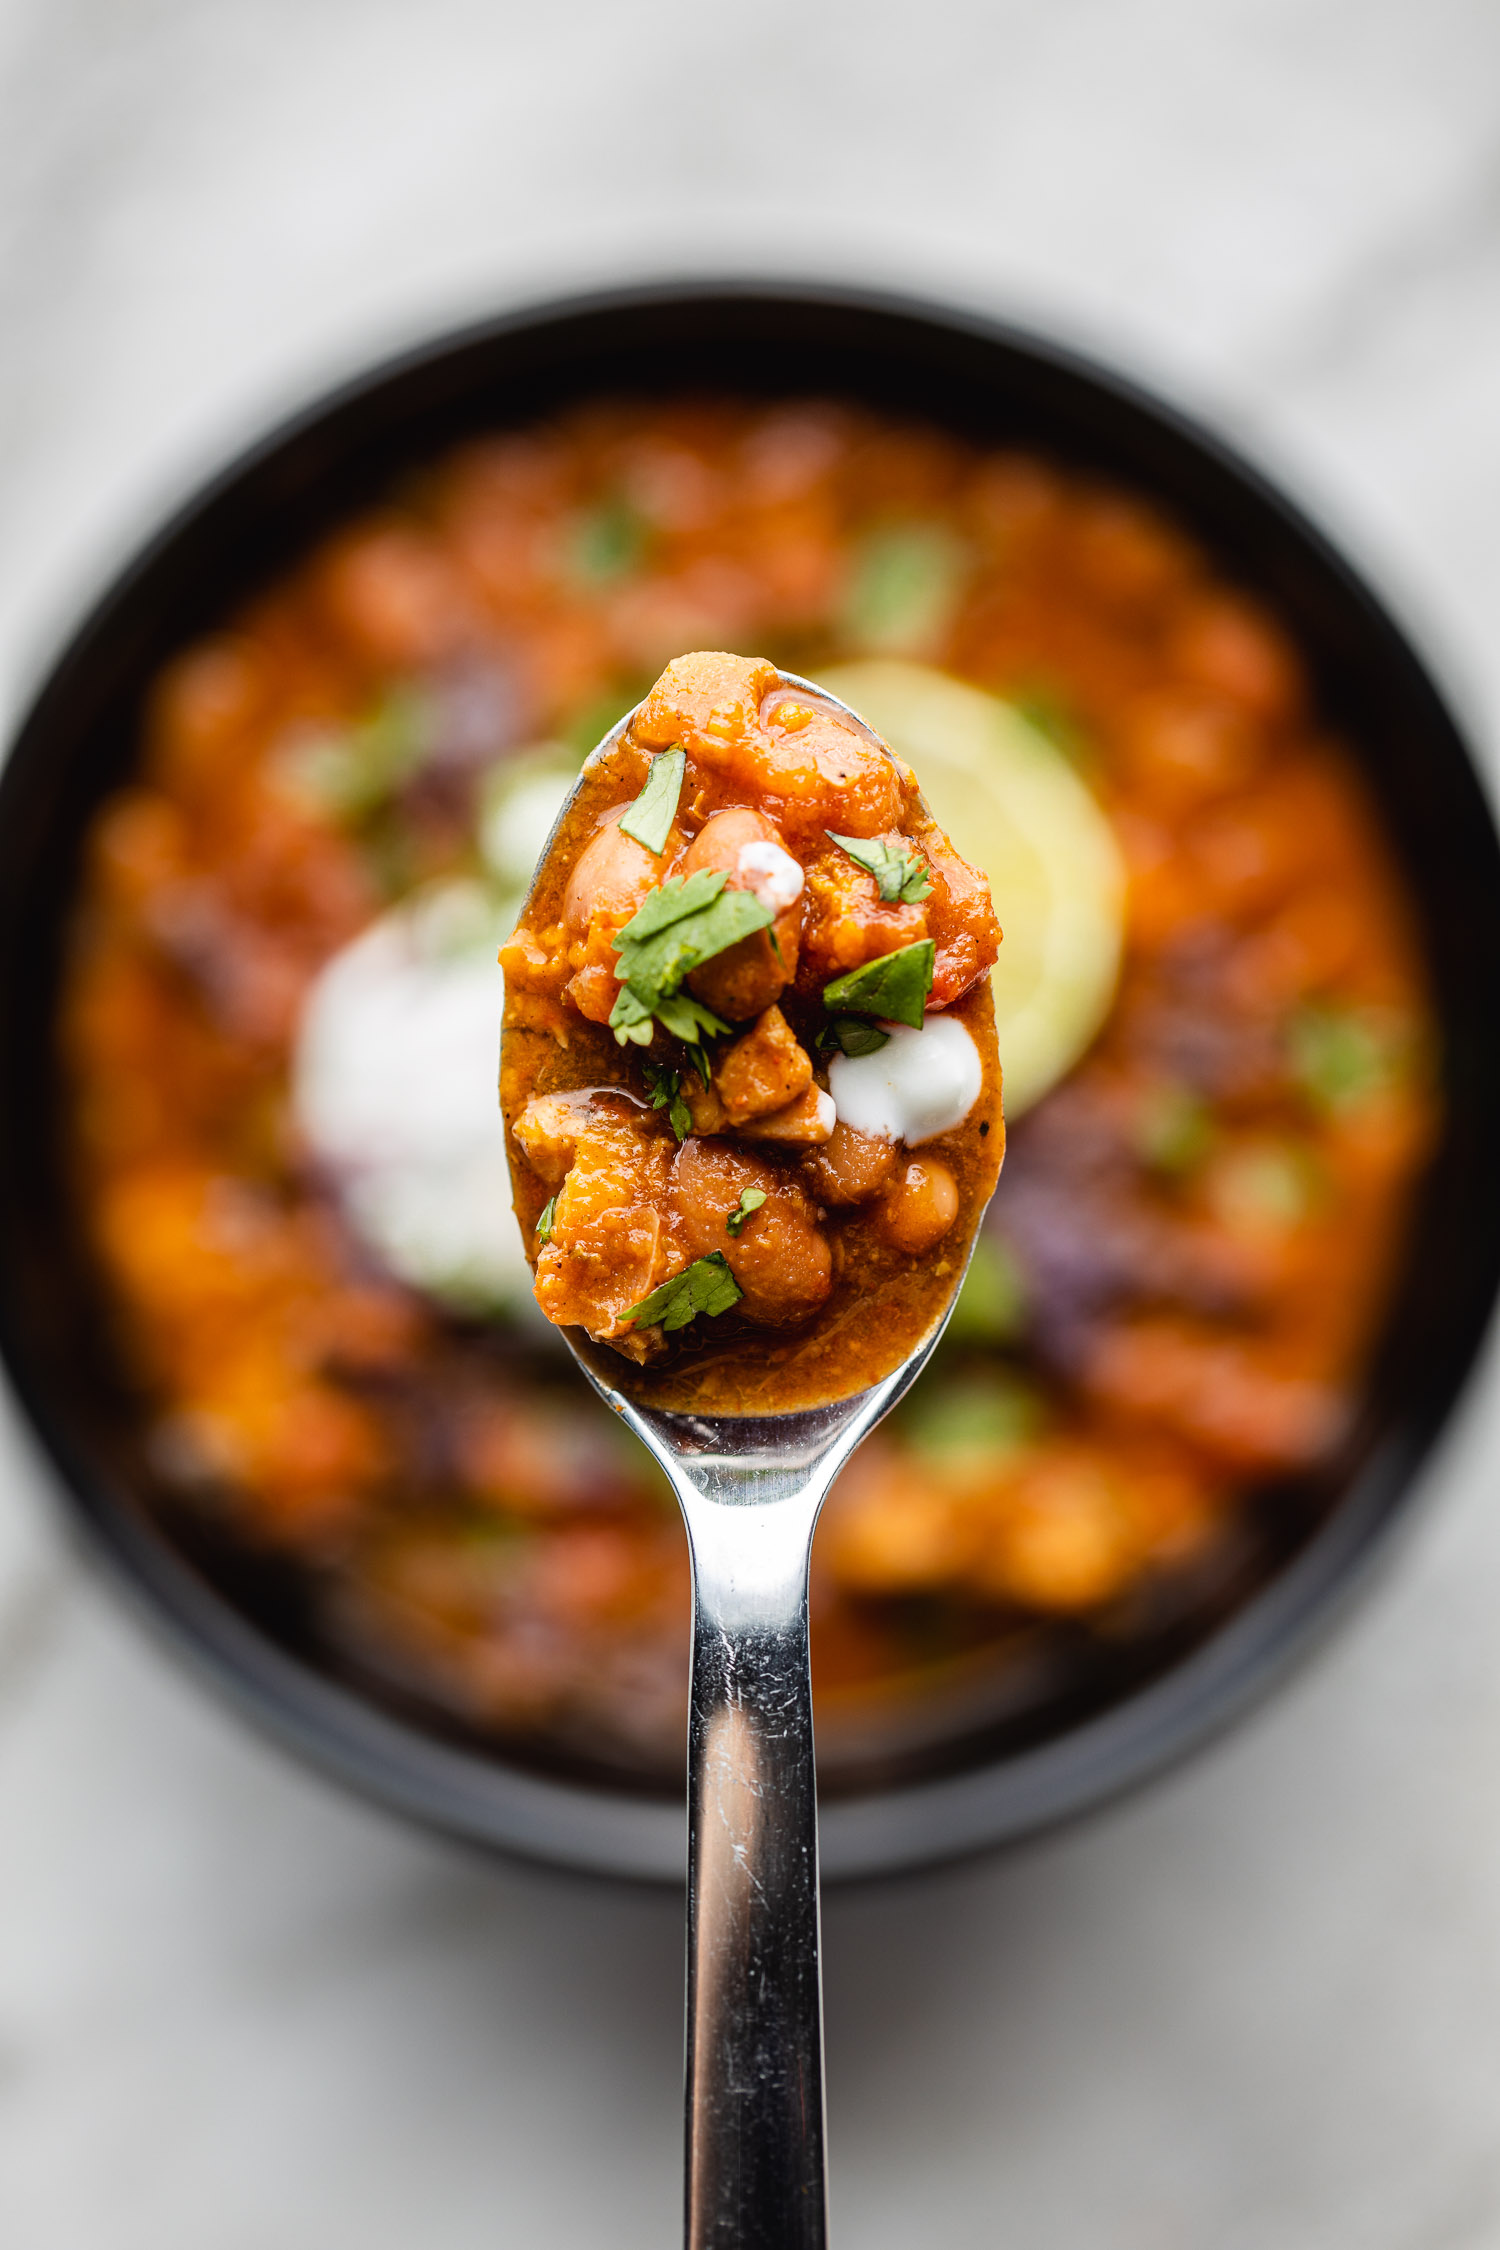 a hearty bowl of chili sits below a spoonful being lifted above it